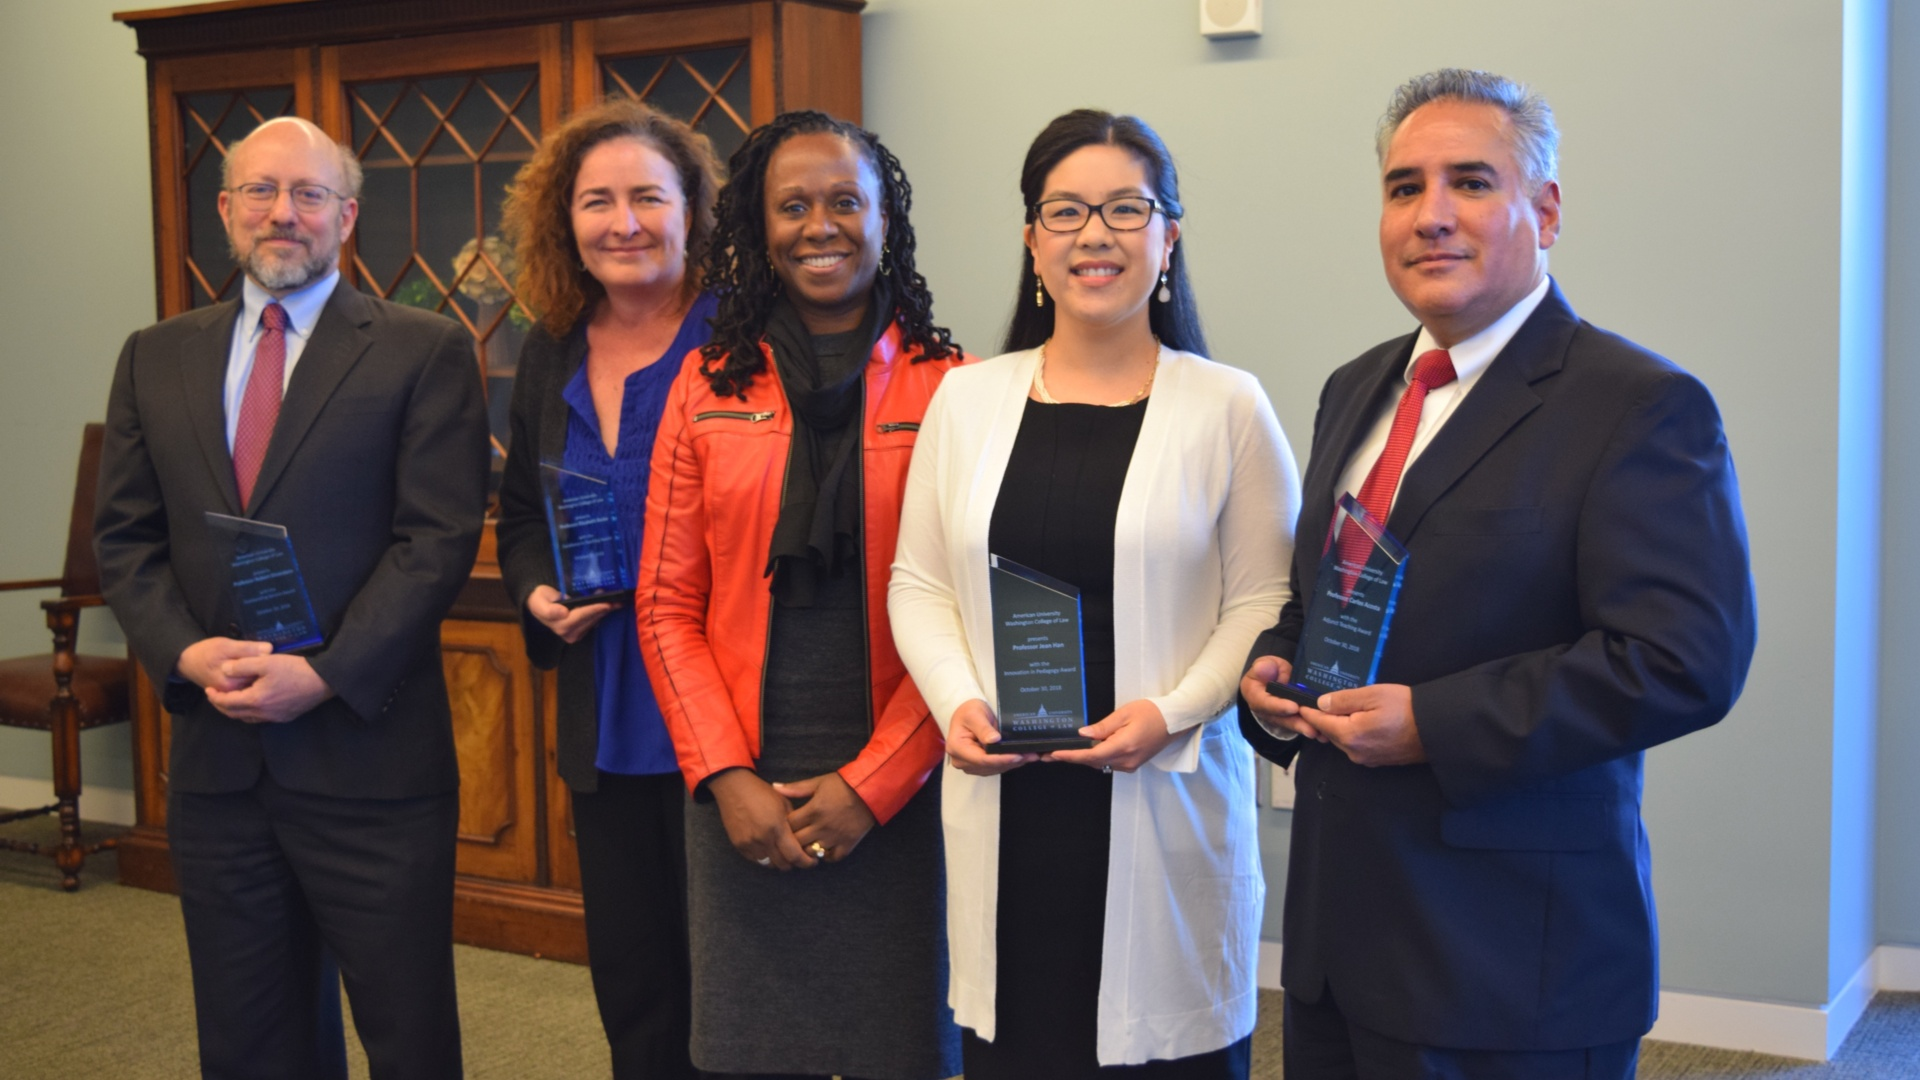 Dean Camille Nelson, center, with AUWCL Teaching and Service Award recipients, Professor Robert Dinerstein, Professor Elizabeth Earle Beske, Professor Jean Han, and Judge Carlos Acosta